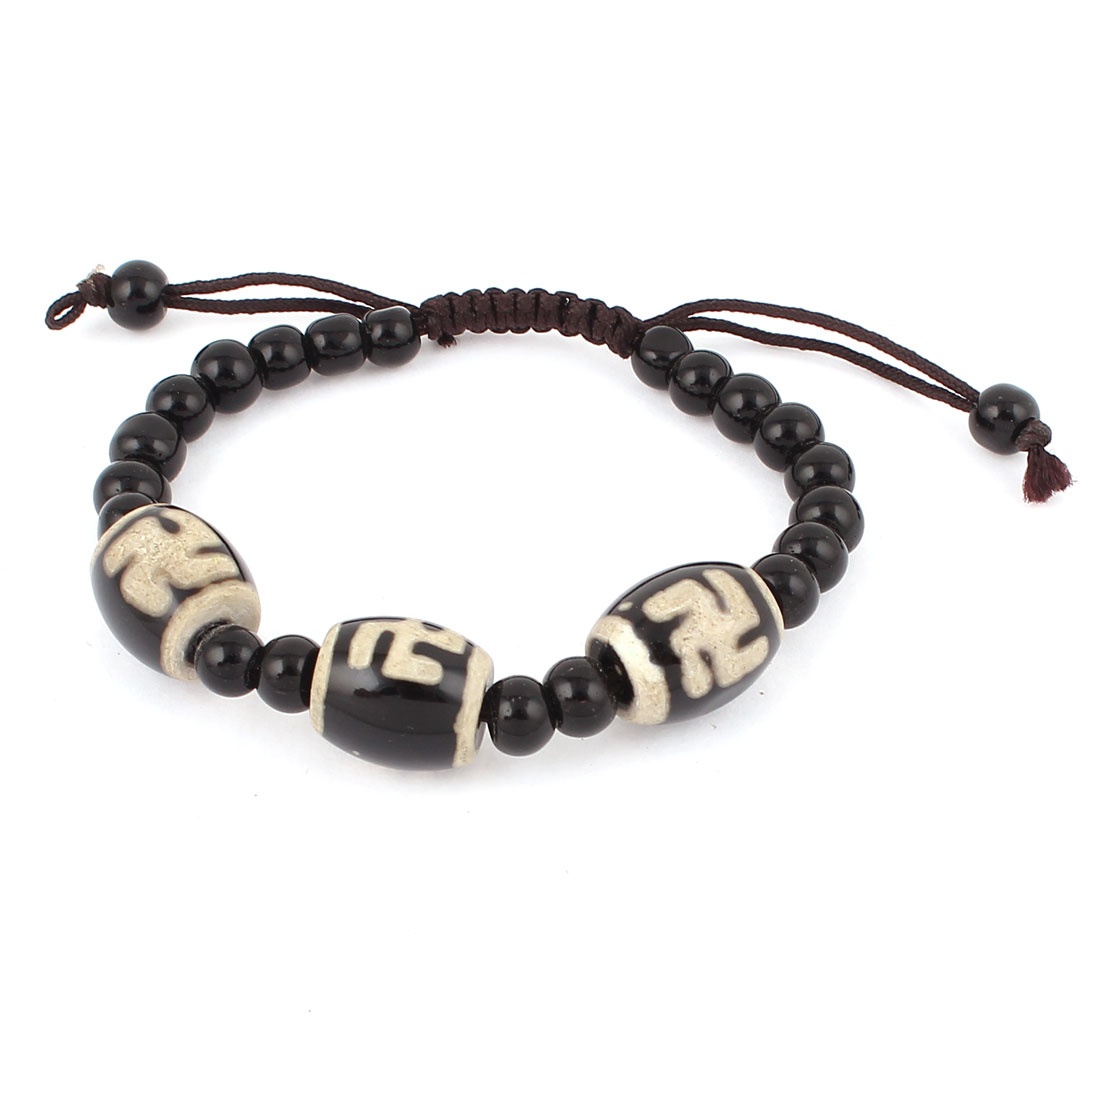 Unisex Tibetan Style DZI Beads Amulet Adjustable String Bangle Bracelet Black